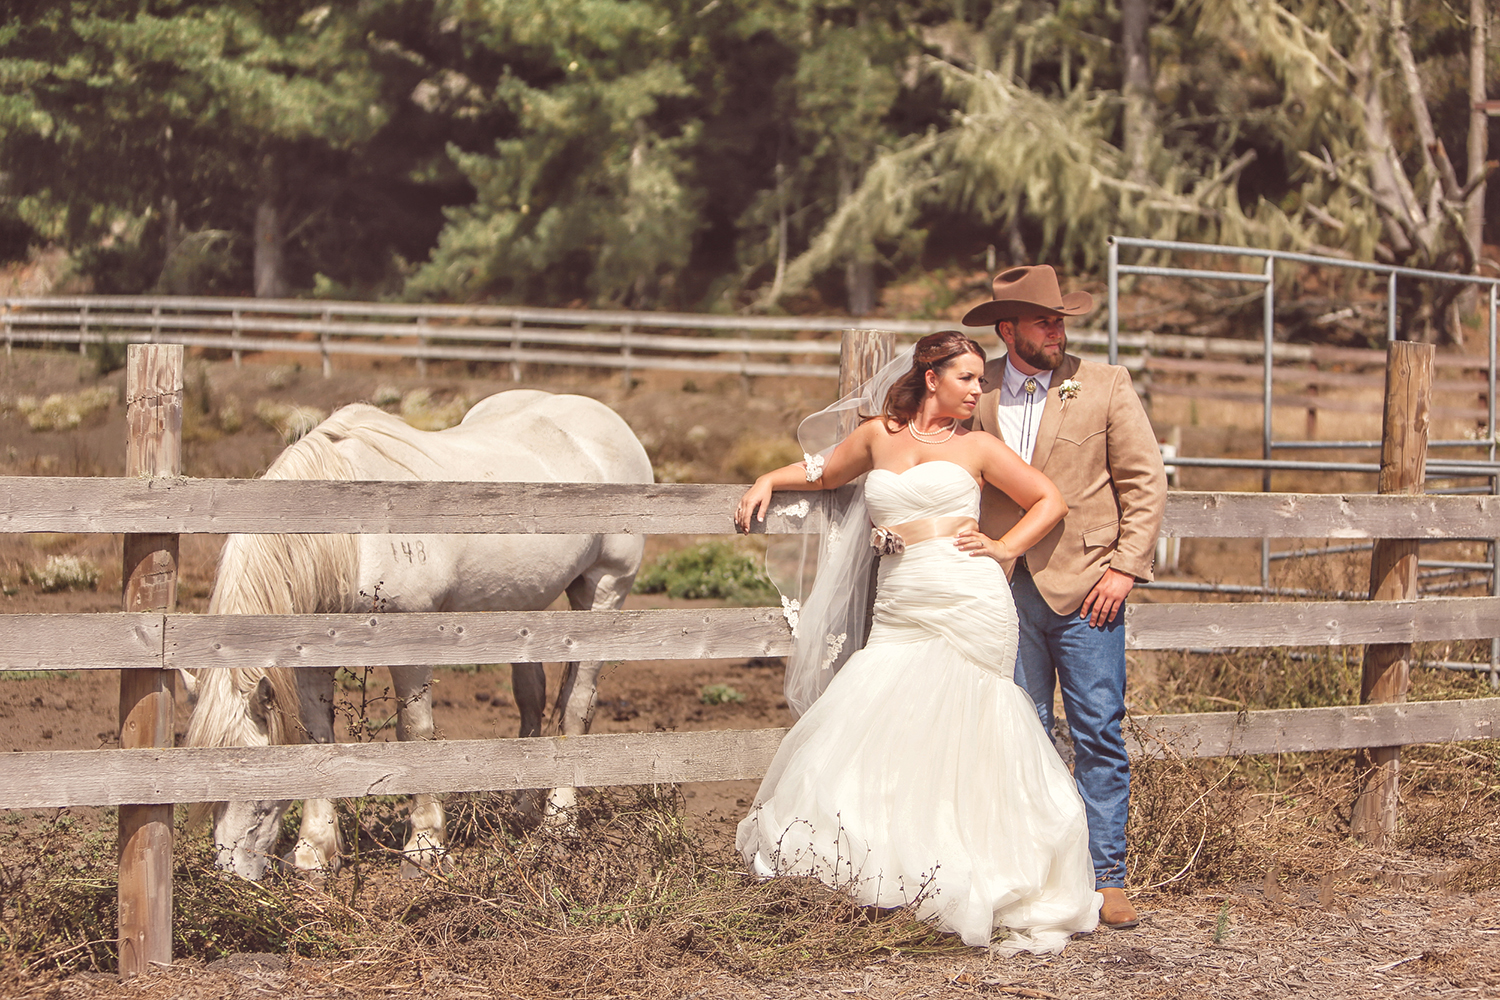 Dena_Rooney_Wedding_Photographer_Long_Branch_Farms_029.jpg